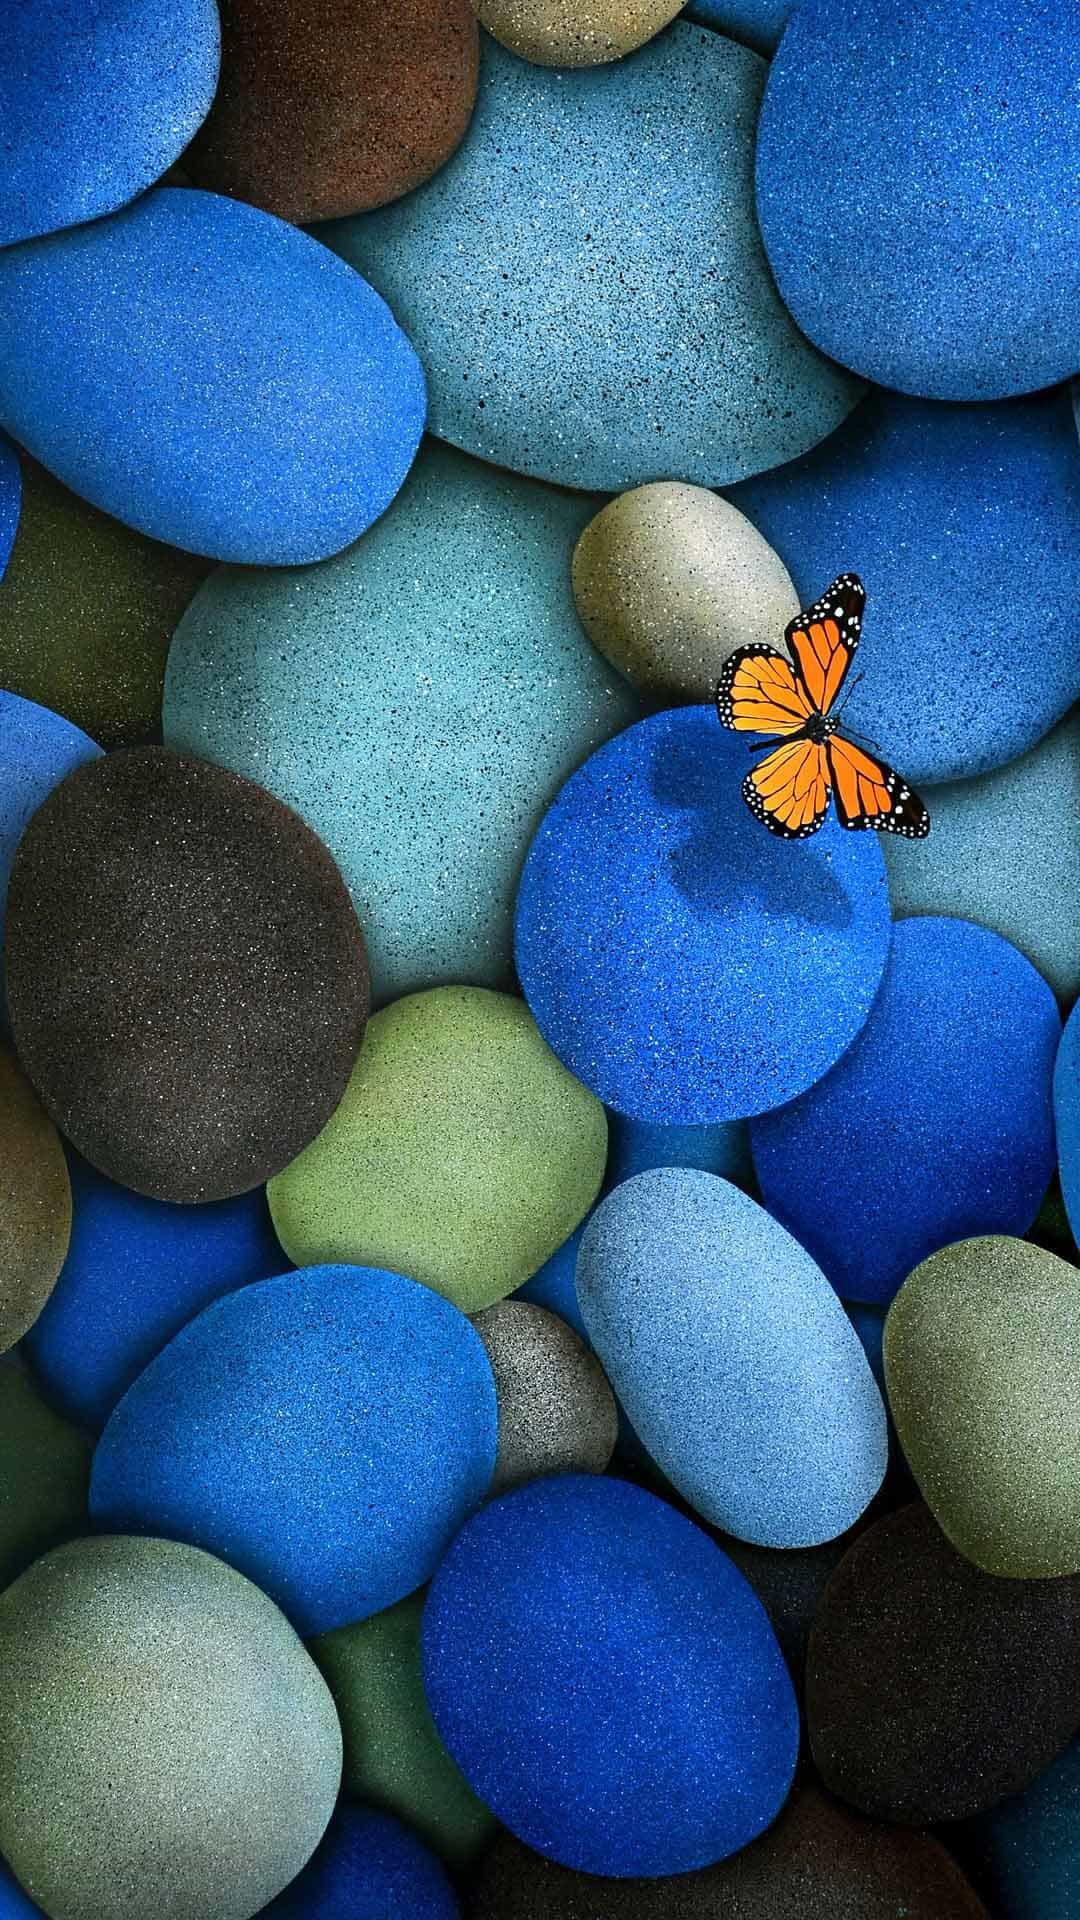 Blue Pebbles Orange Butterfly Android Wallpaper